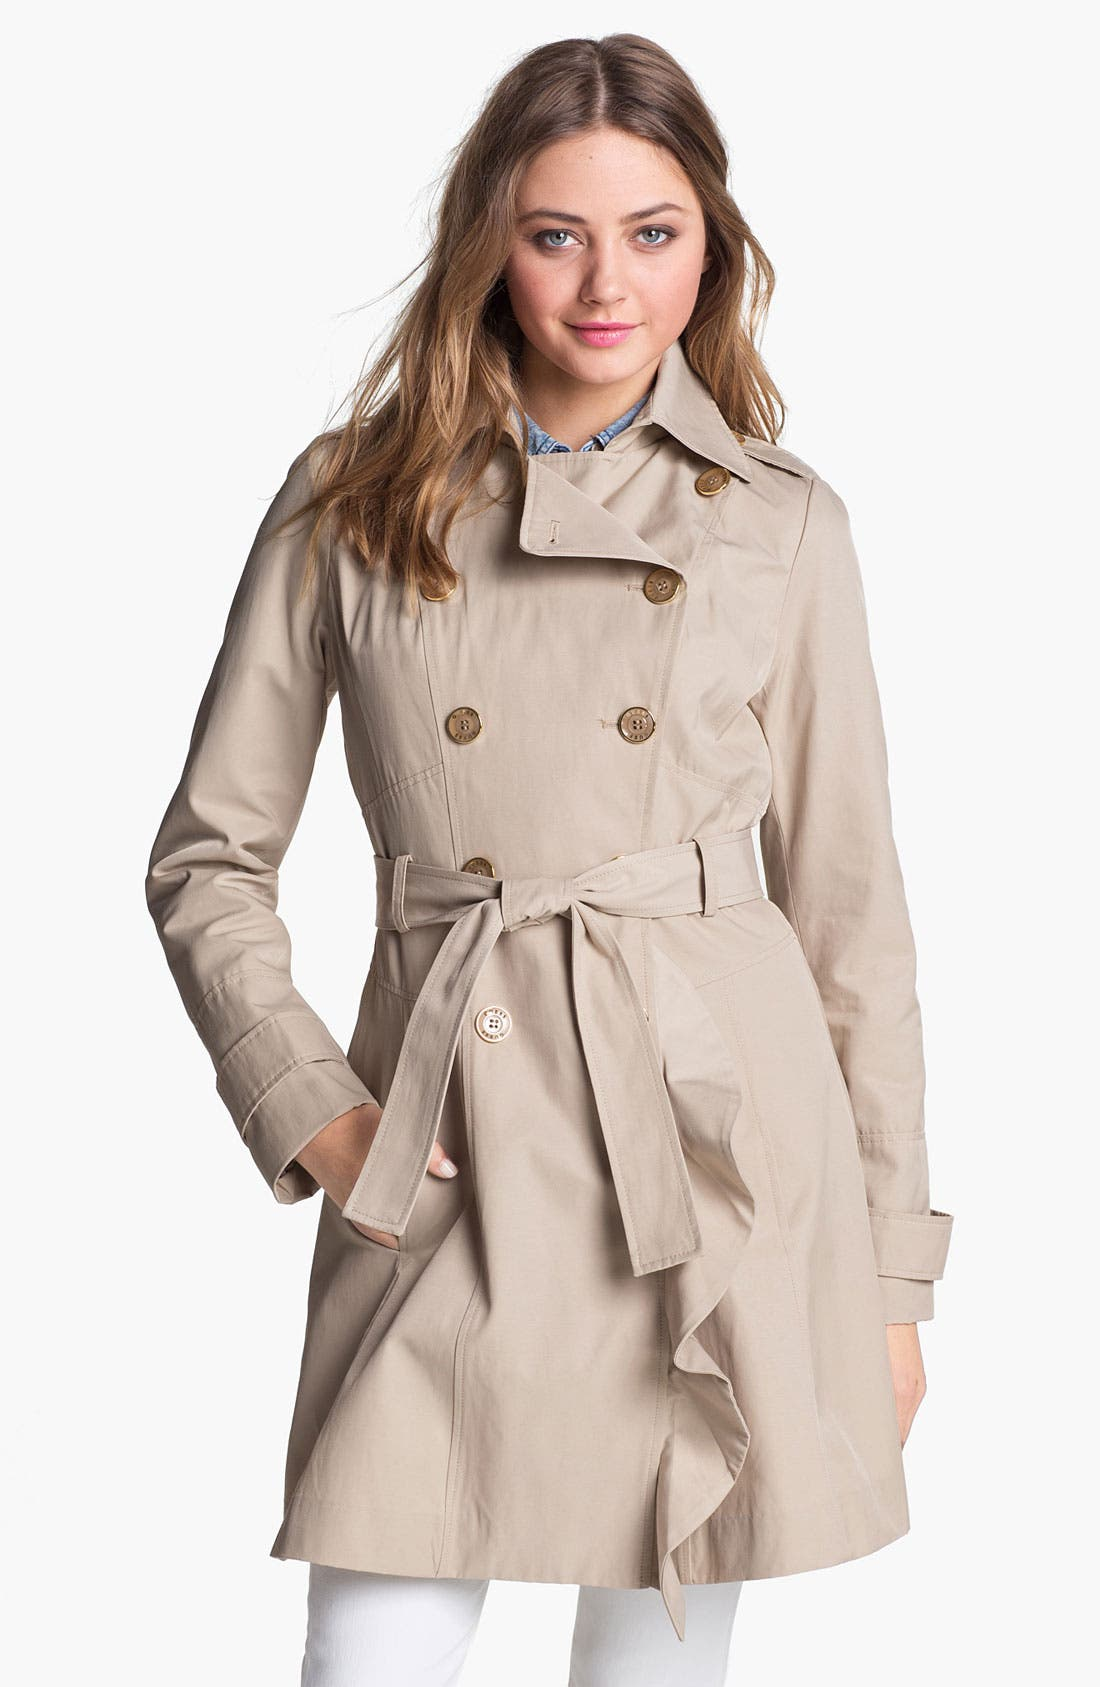 Alternate Image 1 Selected - GUESS Ruffle Front Trench Coat (Regular & Petite) (Online Only)